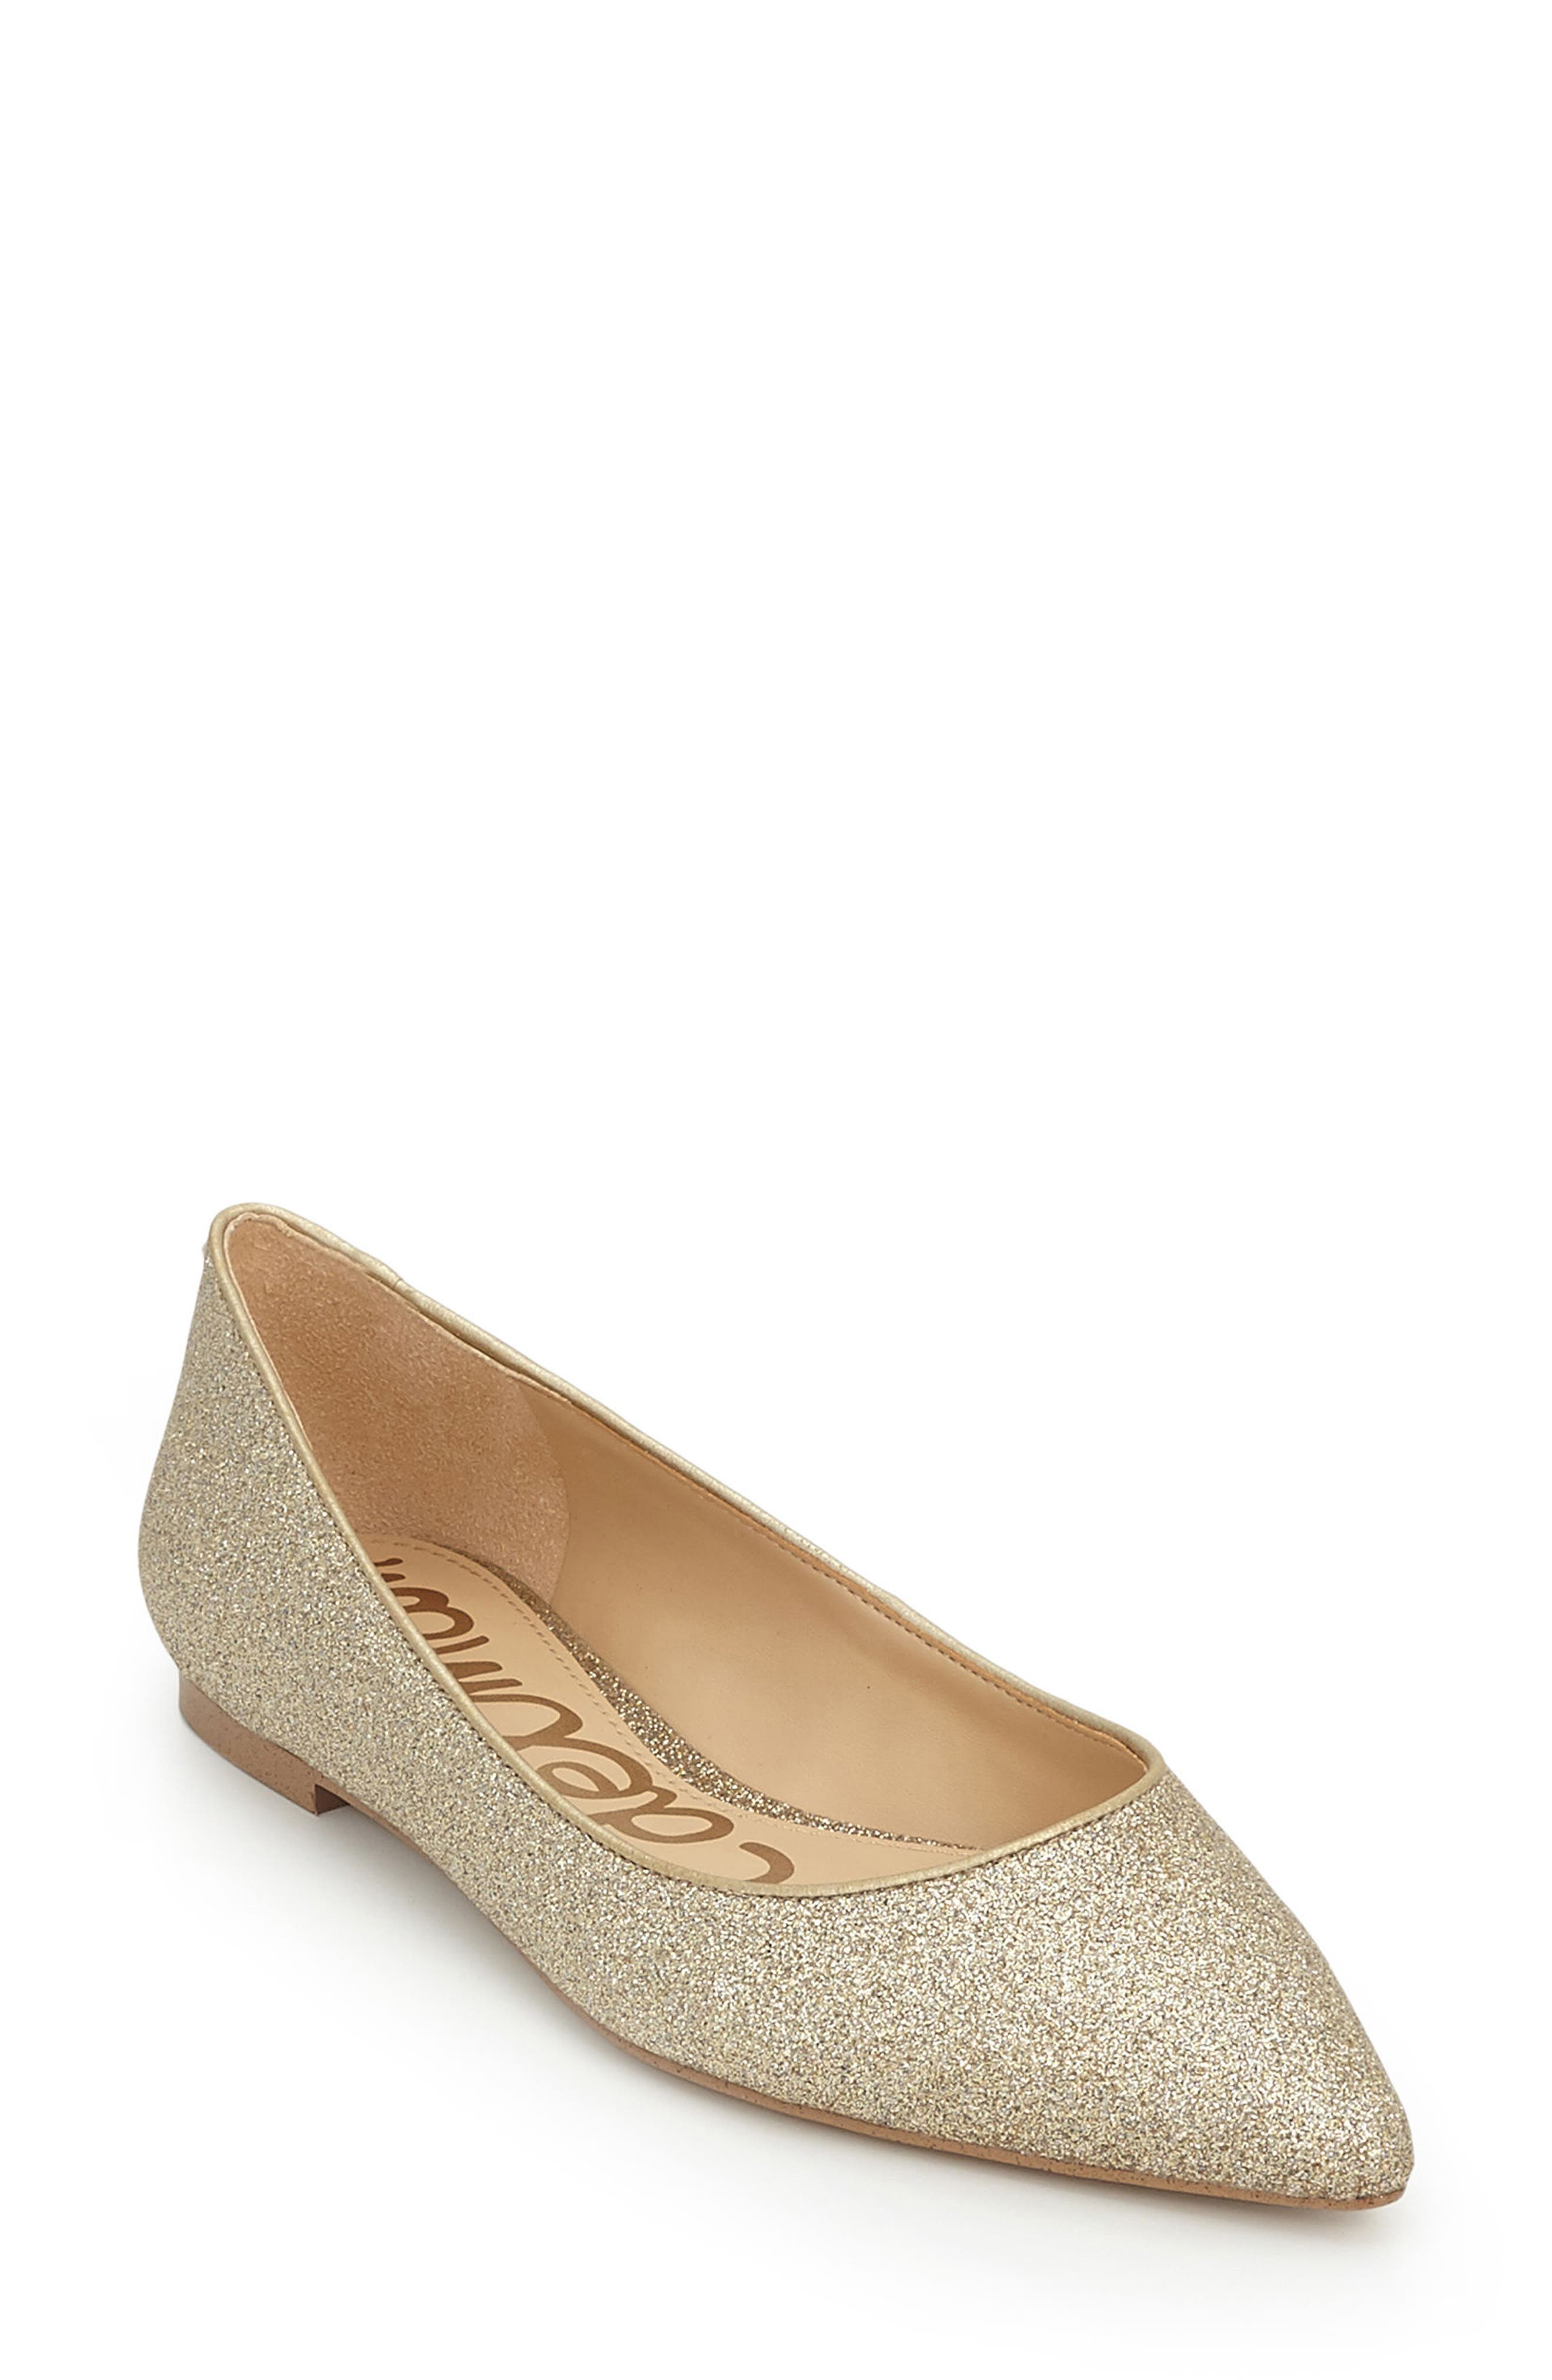 Rae Pointy Toe Flat,                         Main,                         color, Gold Glitter